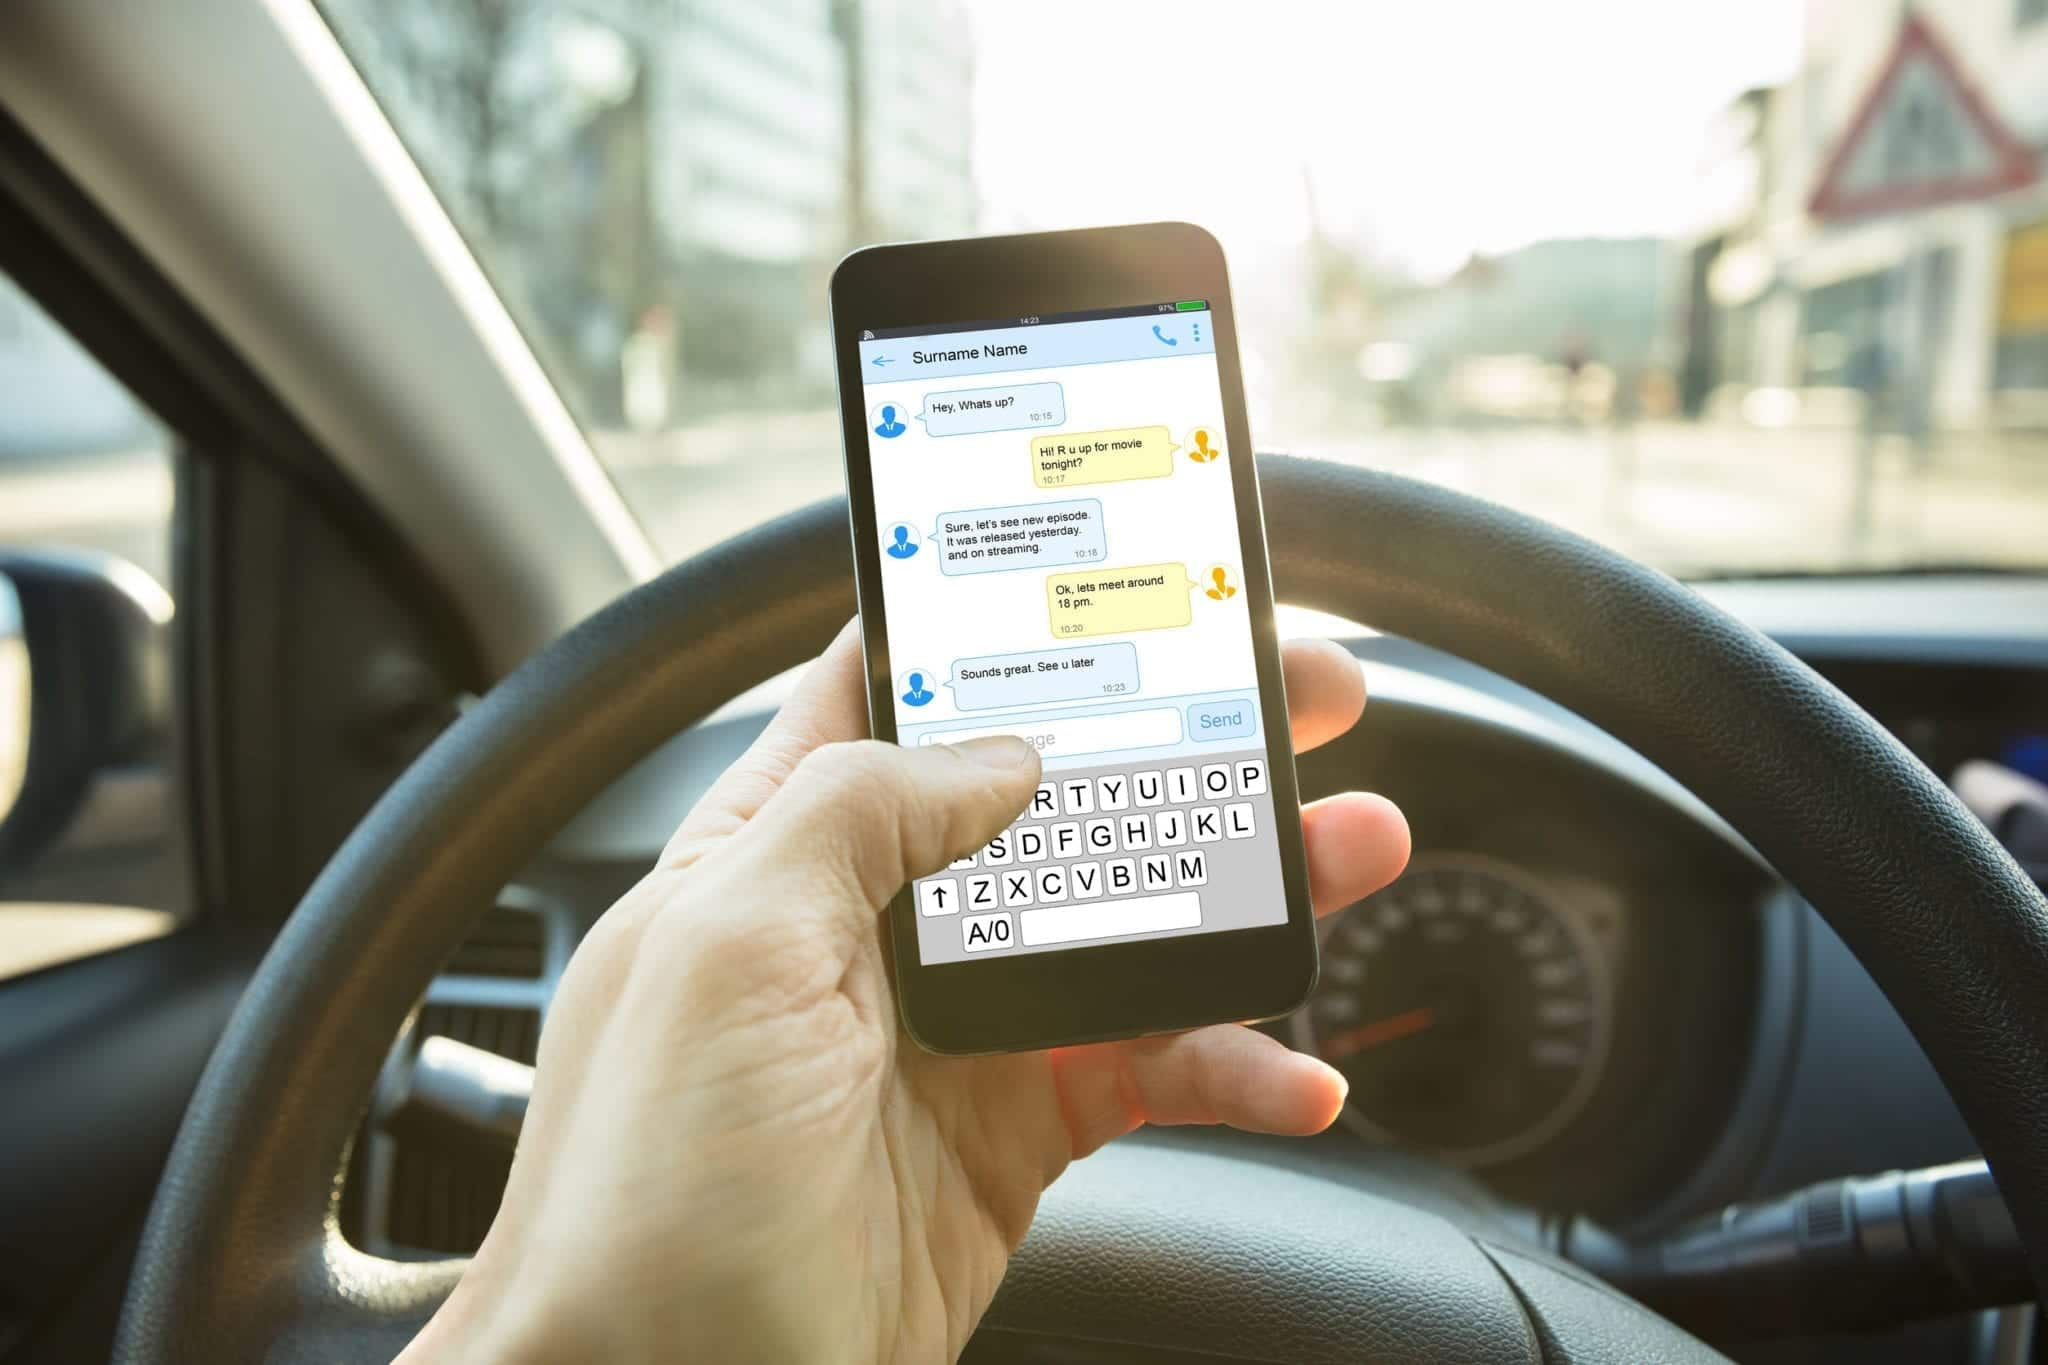 How Floridians Can Stop Using Their Phone While Driving